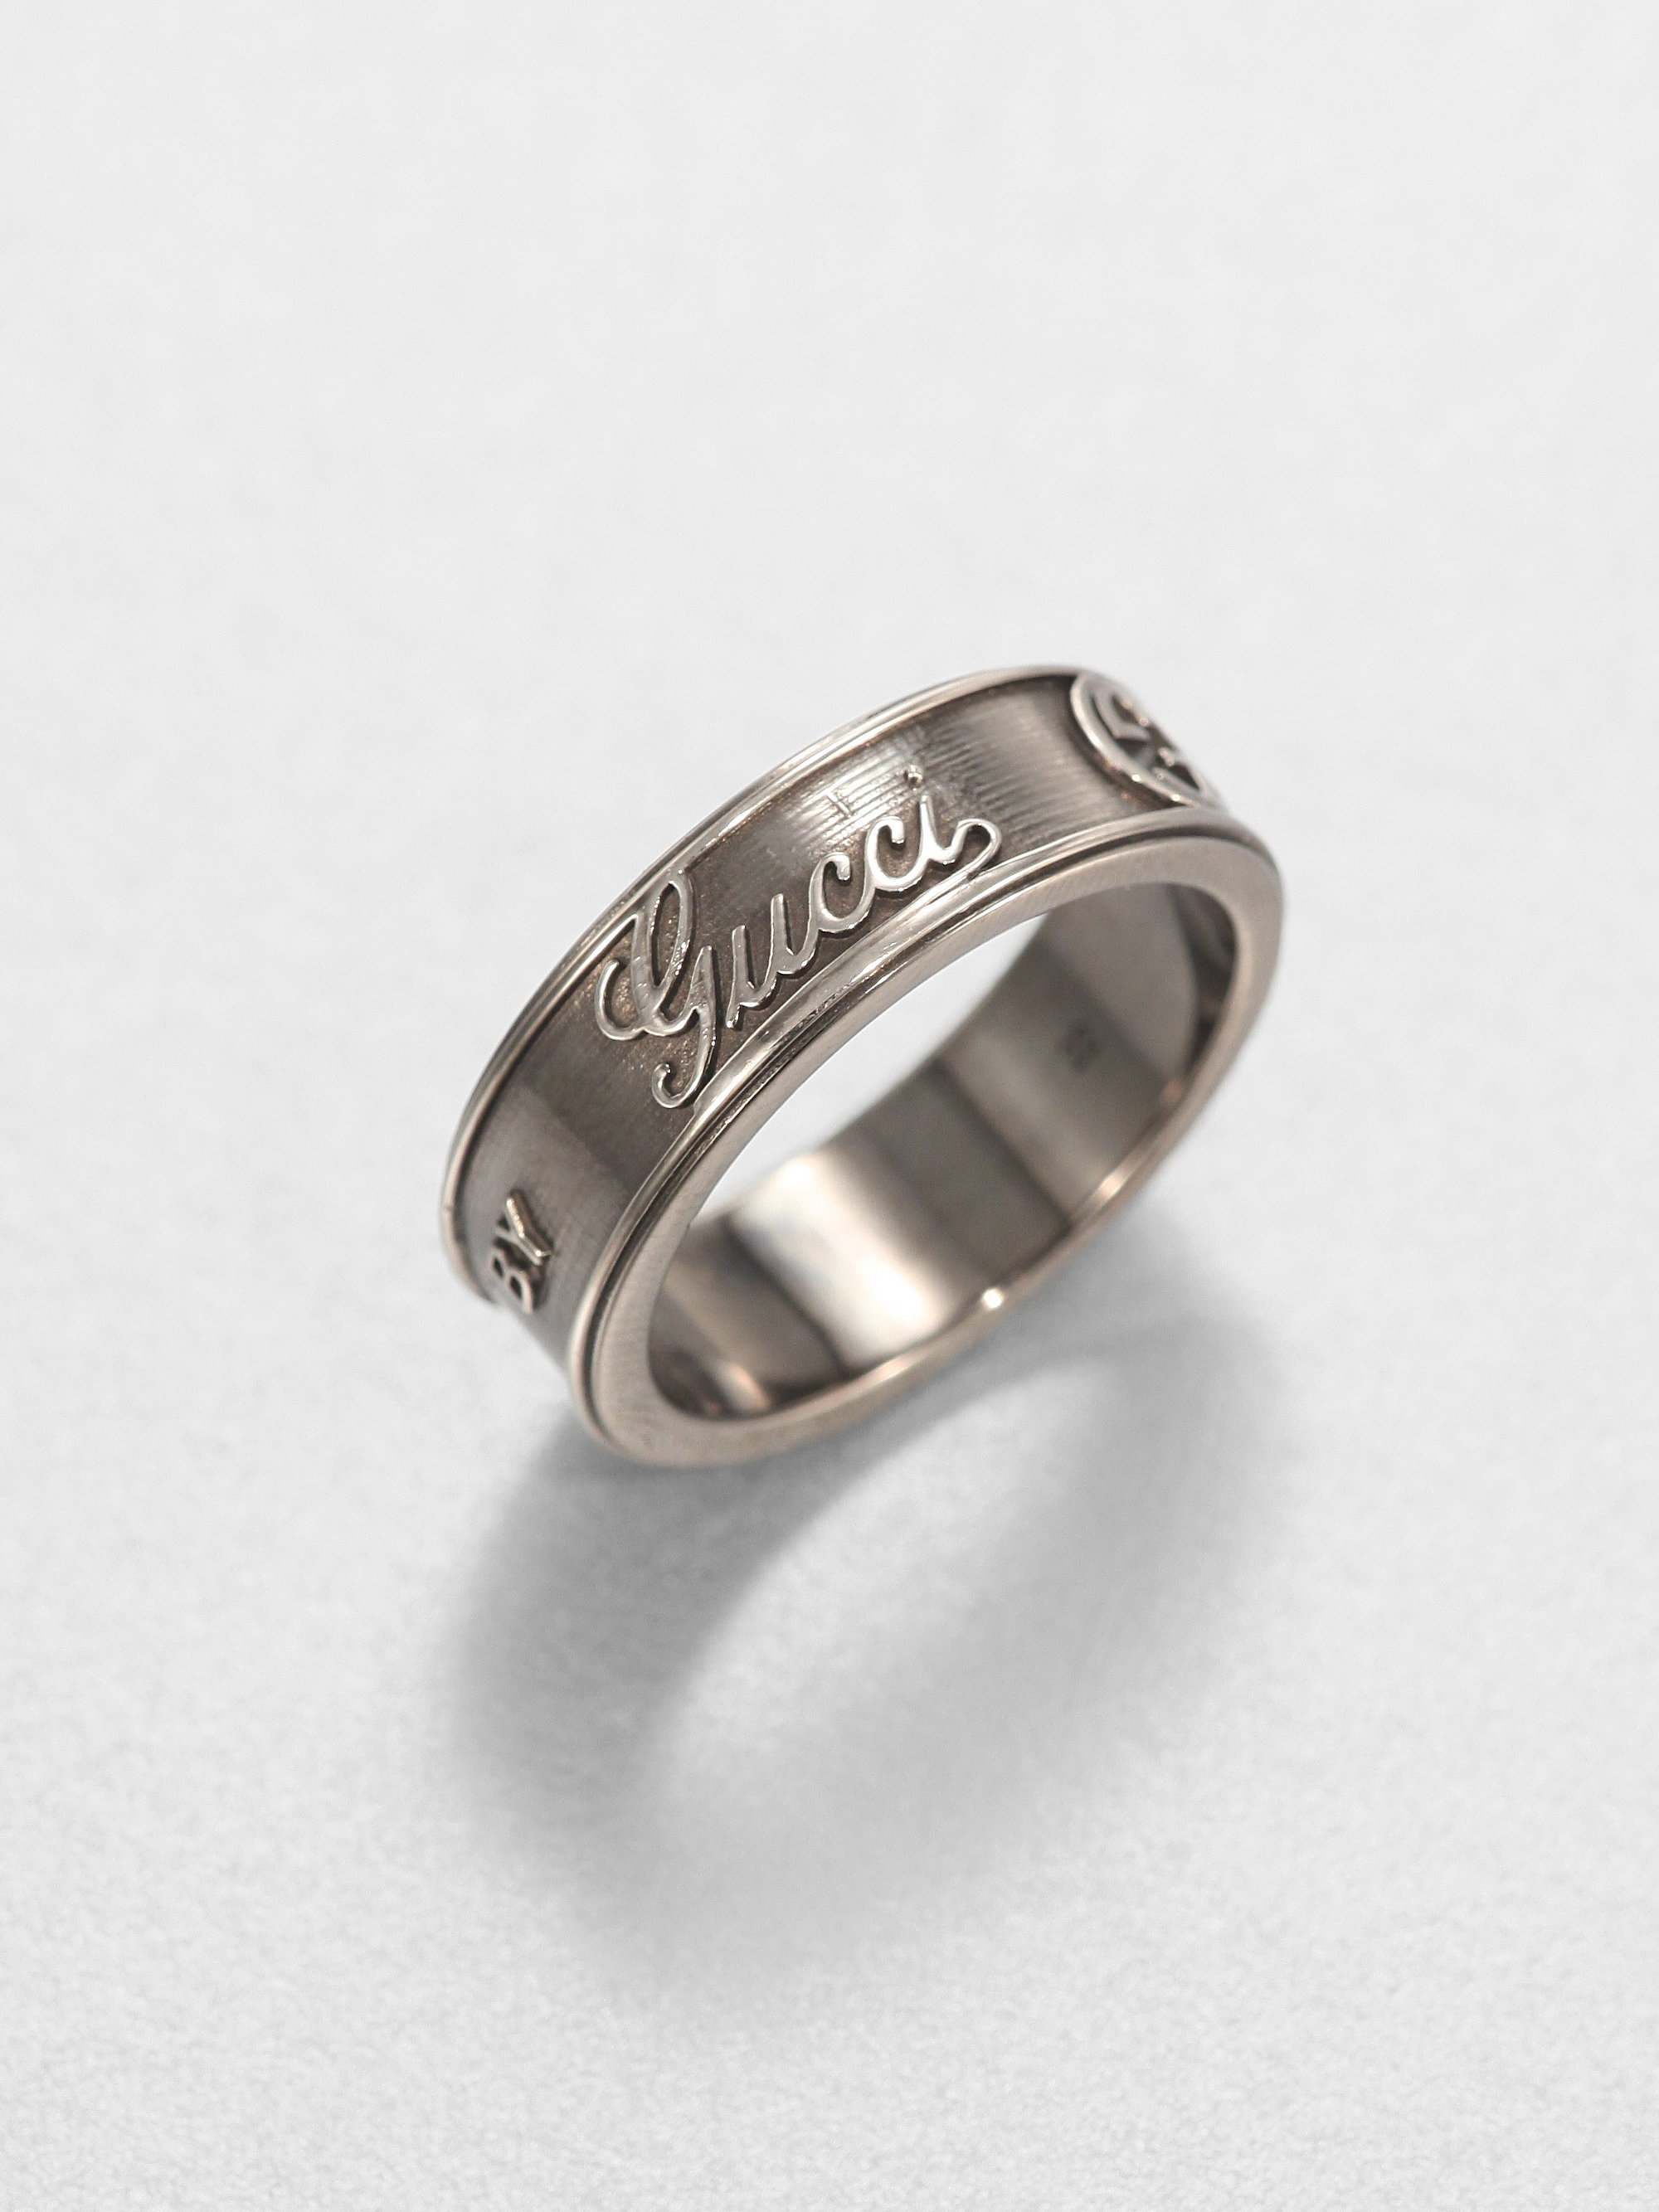 Gucci Gg Craft Large Ring In Metallic For Men Lyst